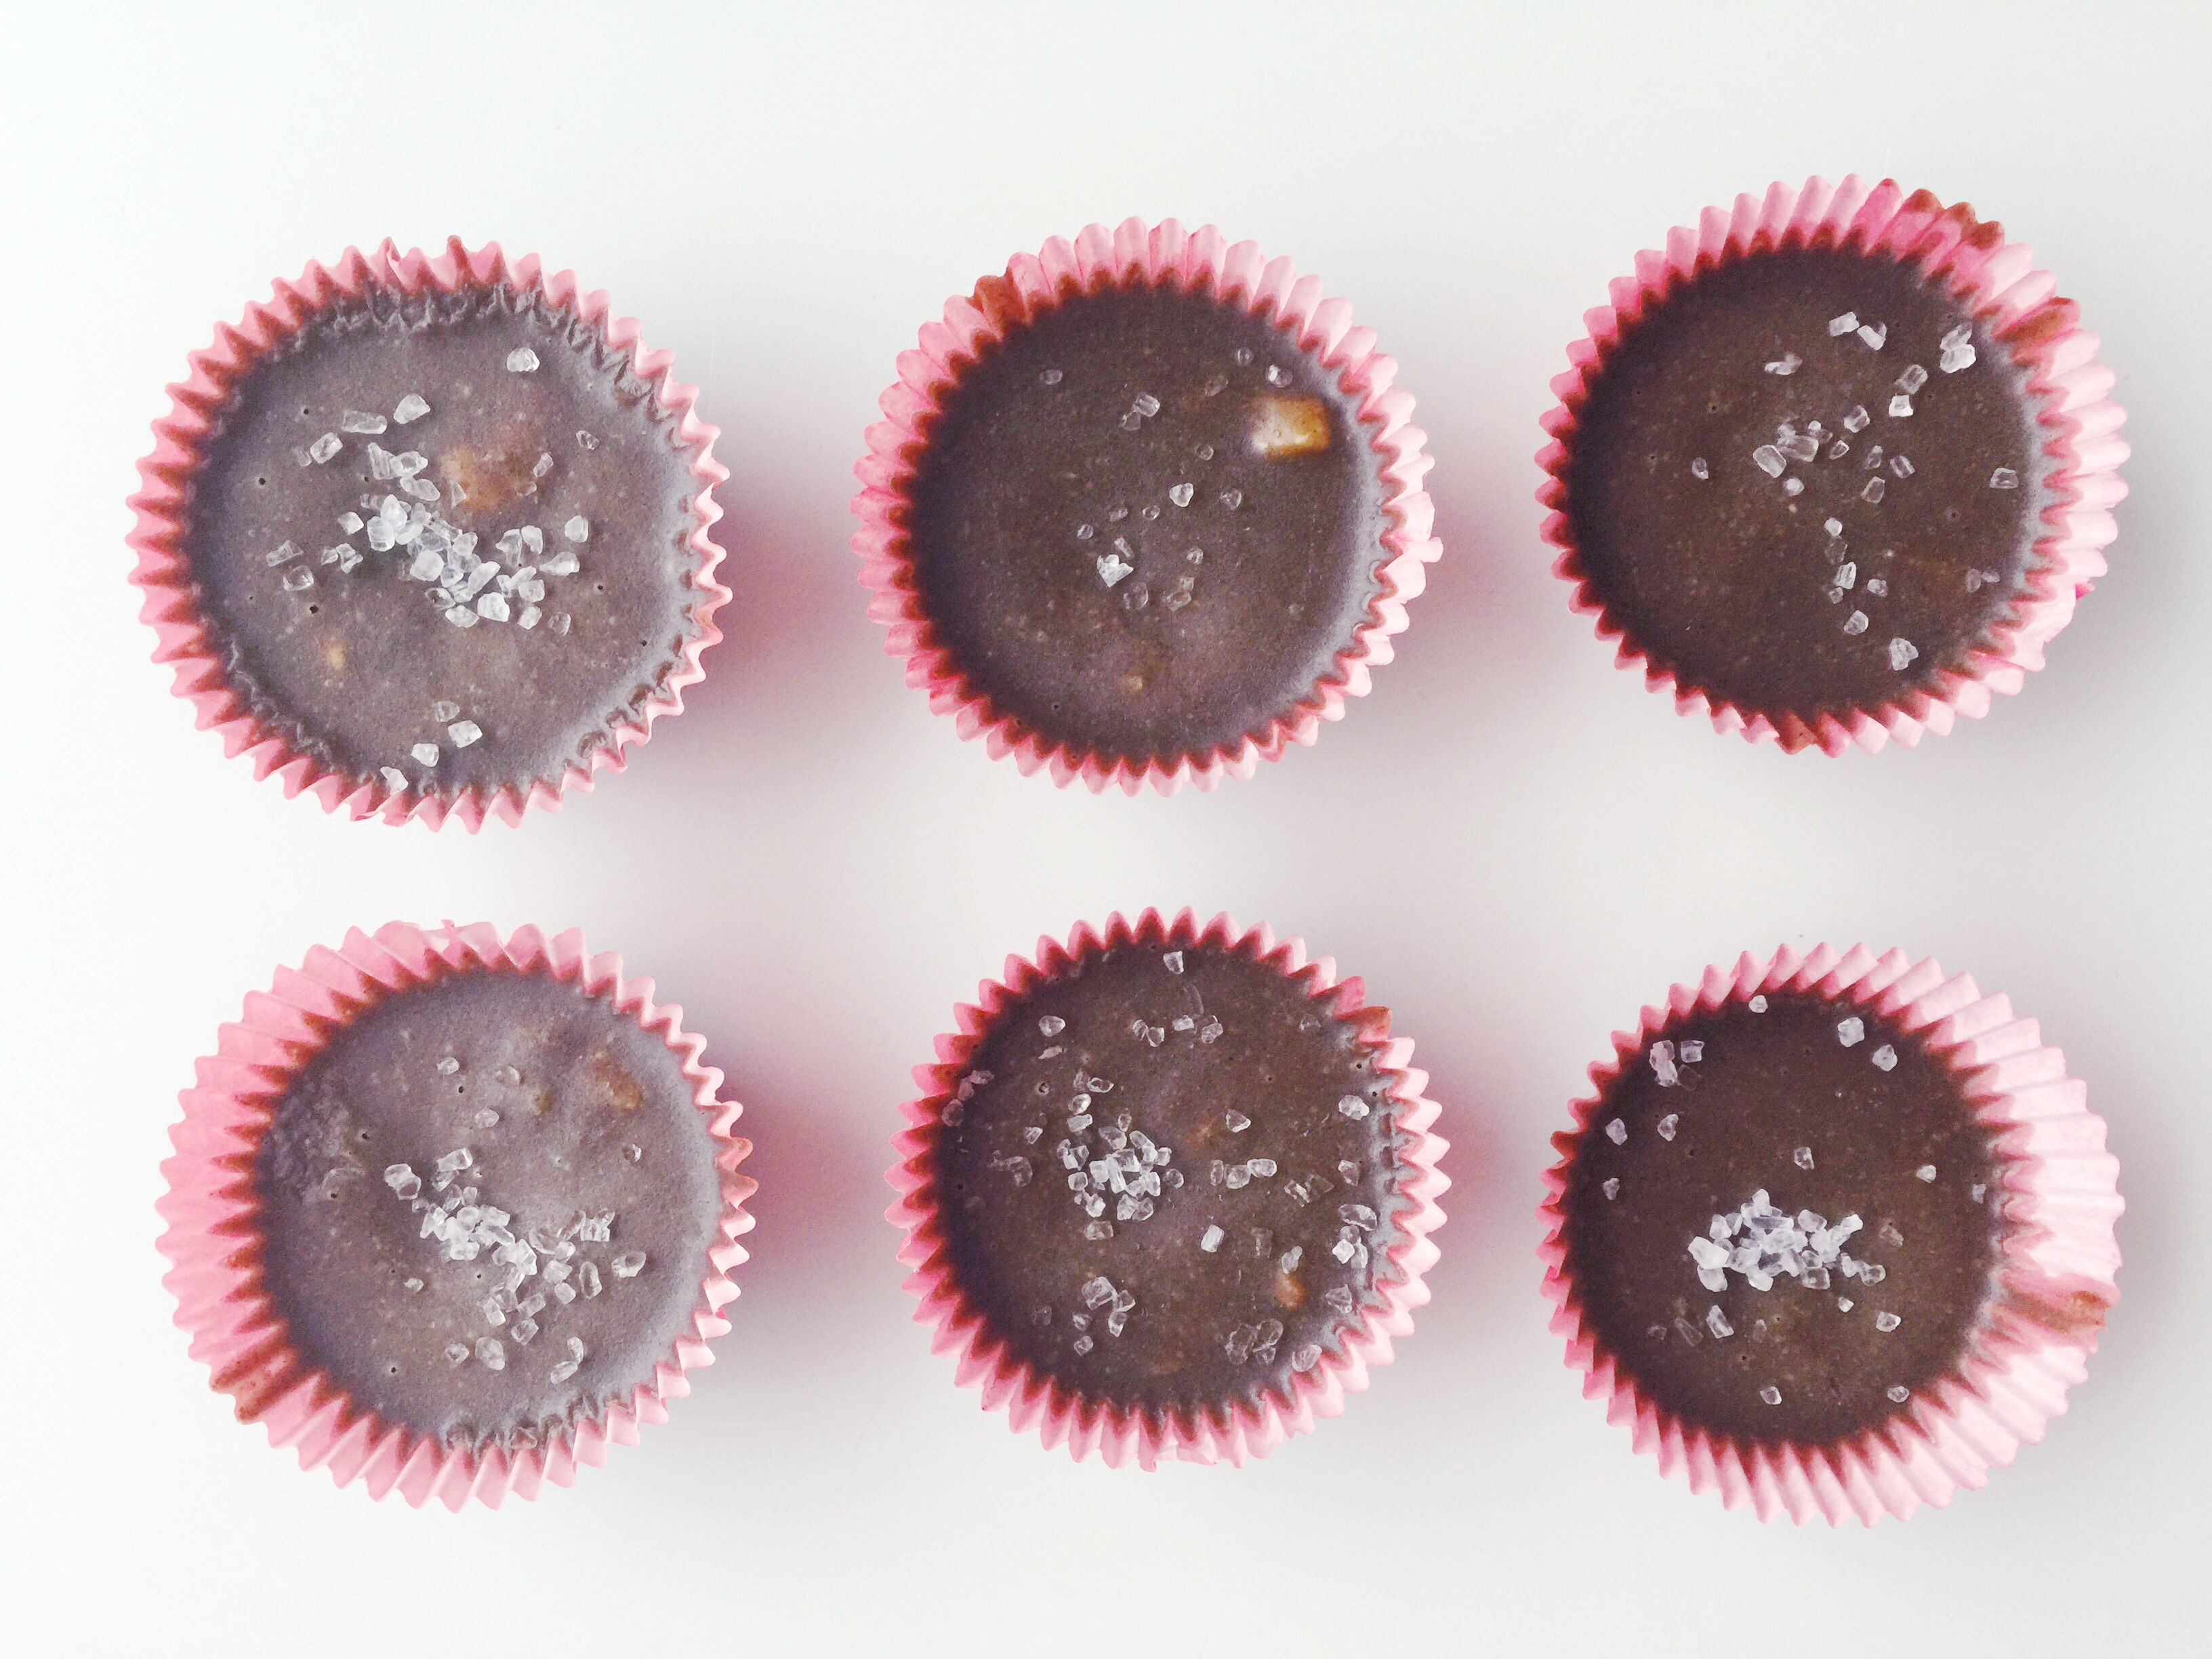 Healthy Homemade Mini Chocolate Dessert Recipe